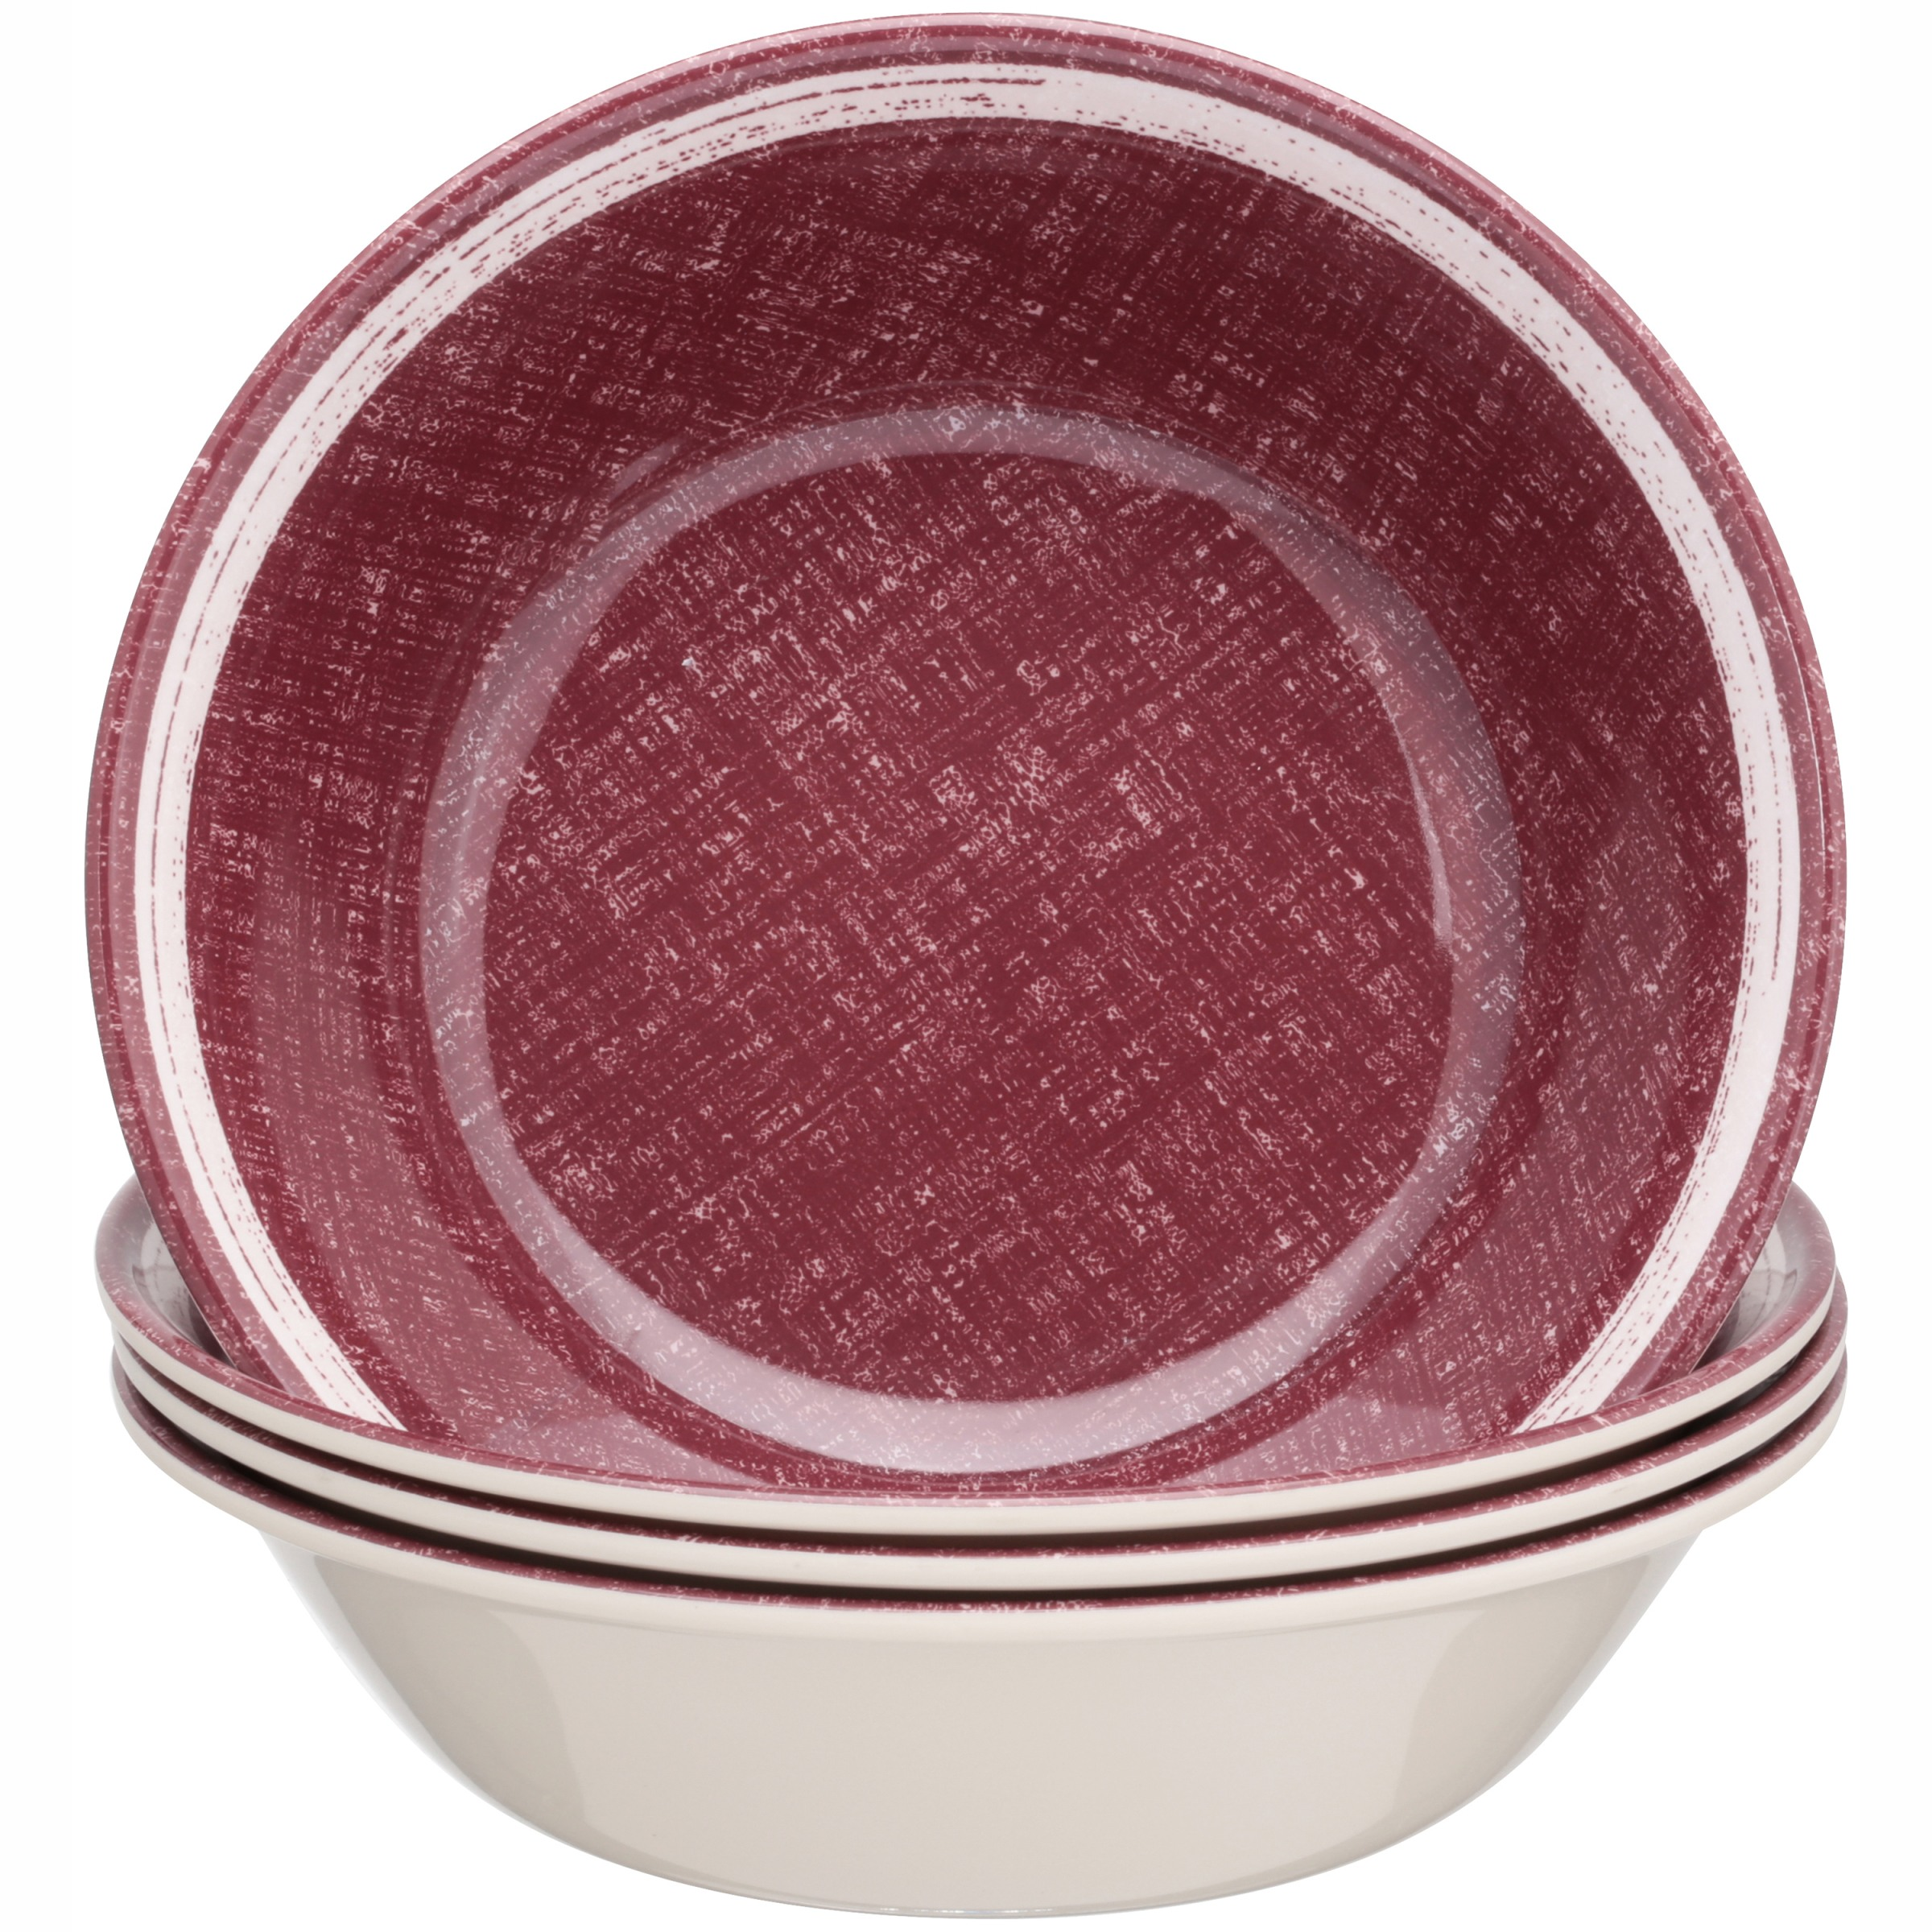 Mainstays Red Linen Bowl, 4 Pack